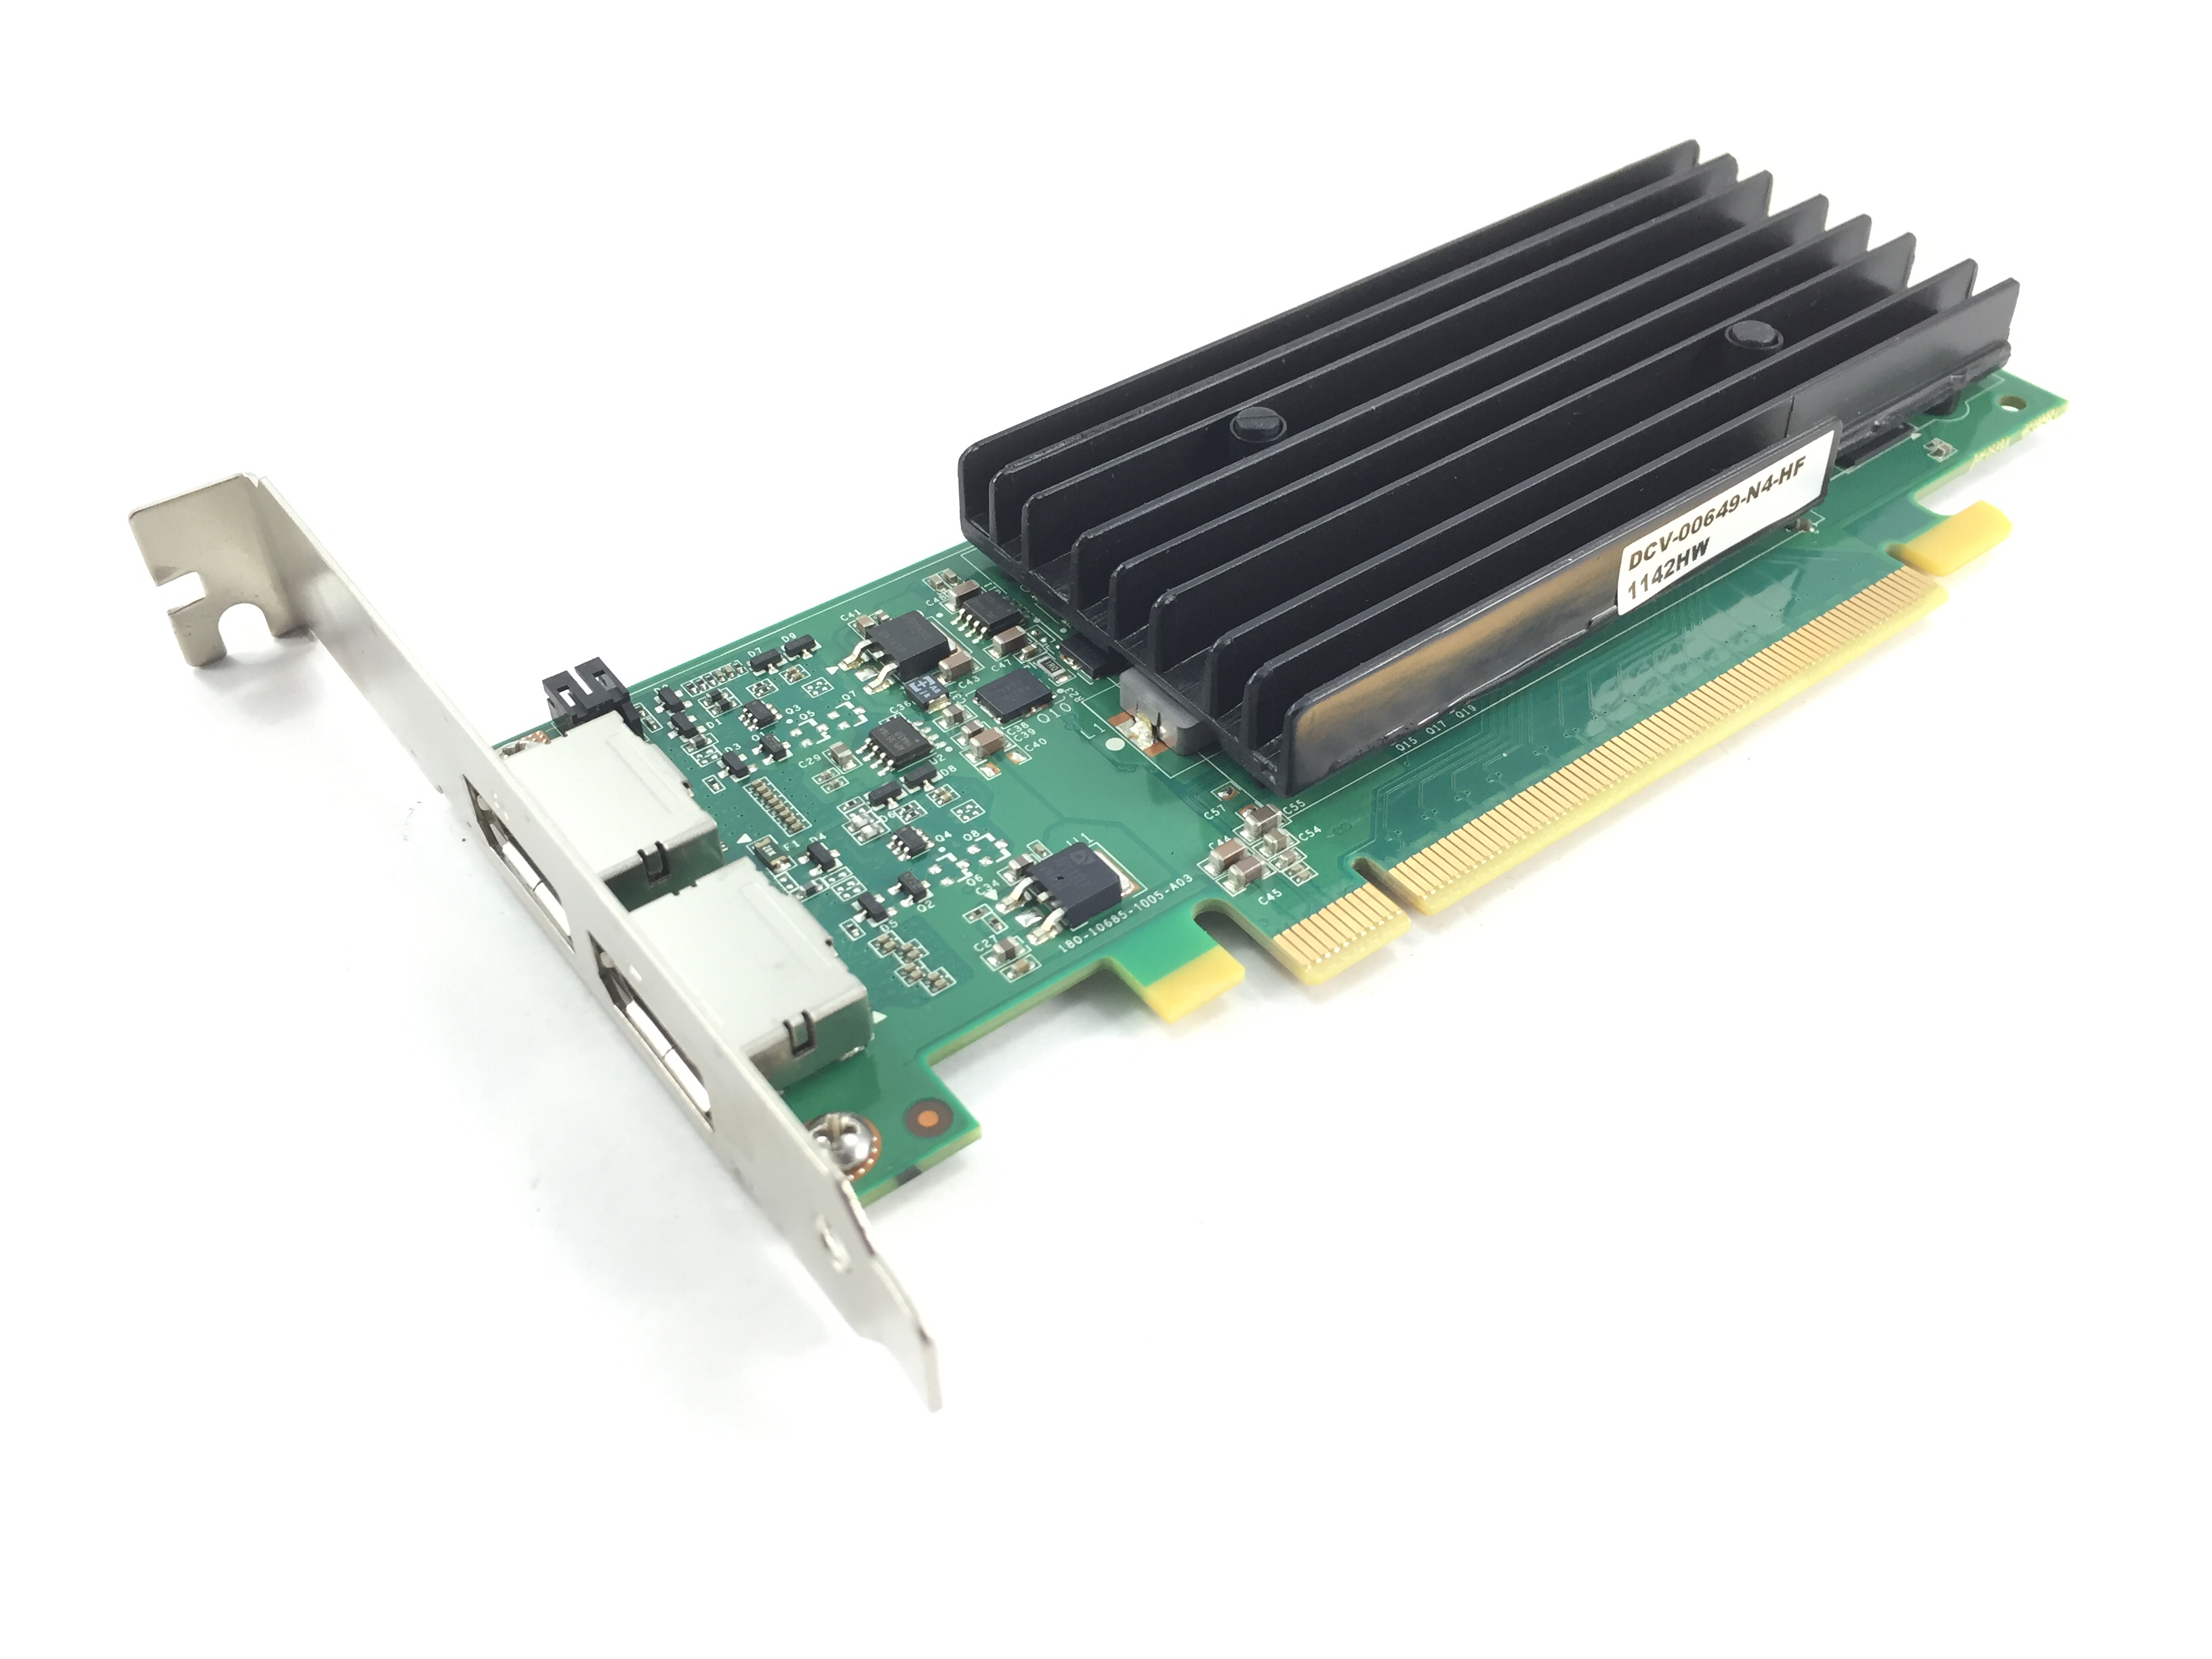 Nvidia Quadro NVS 295 256MB DDR2 64-Bit PCI-E Graphics Card (641462-001)